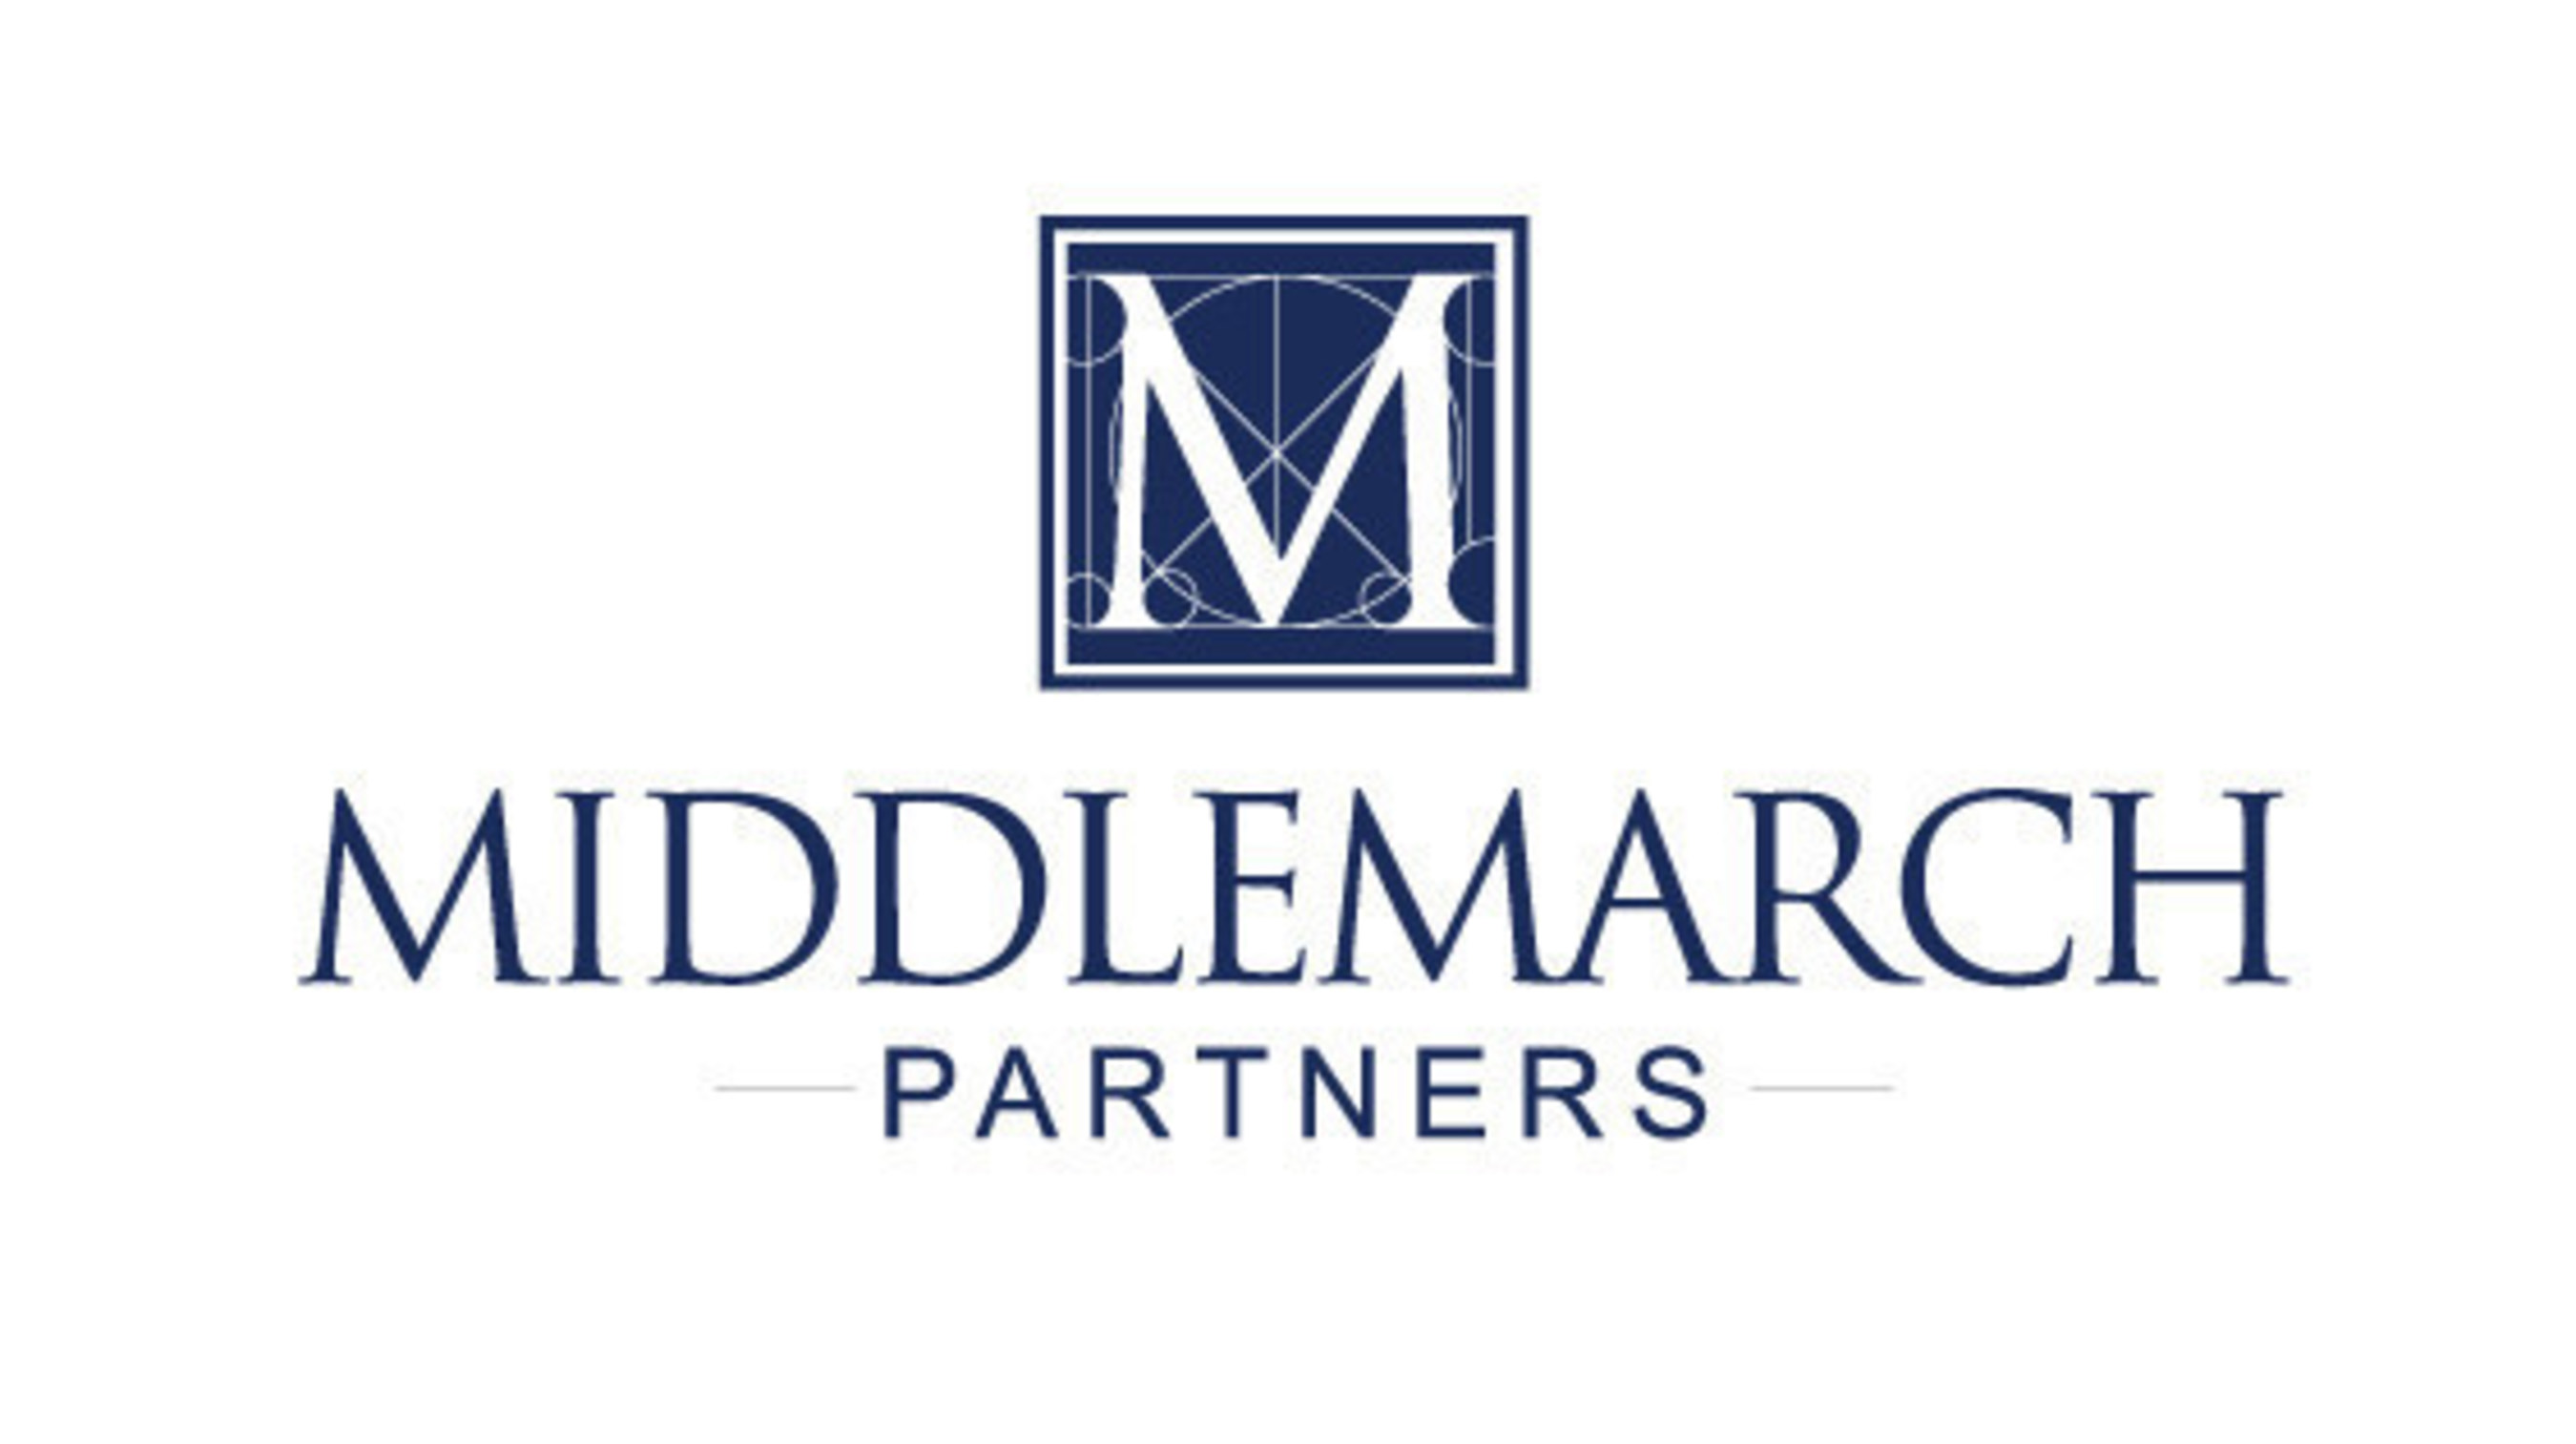 Middlemarch Partners: Financial Services-Focused Merchant Bank Announces the Launch of Middlemarch